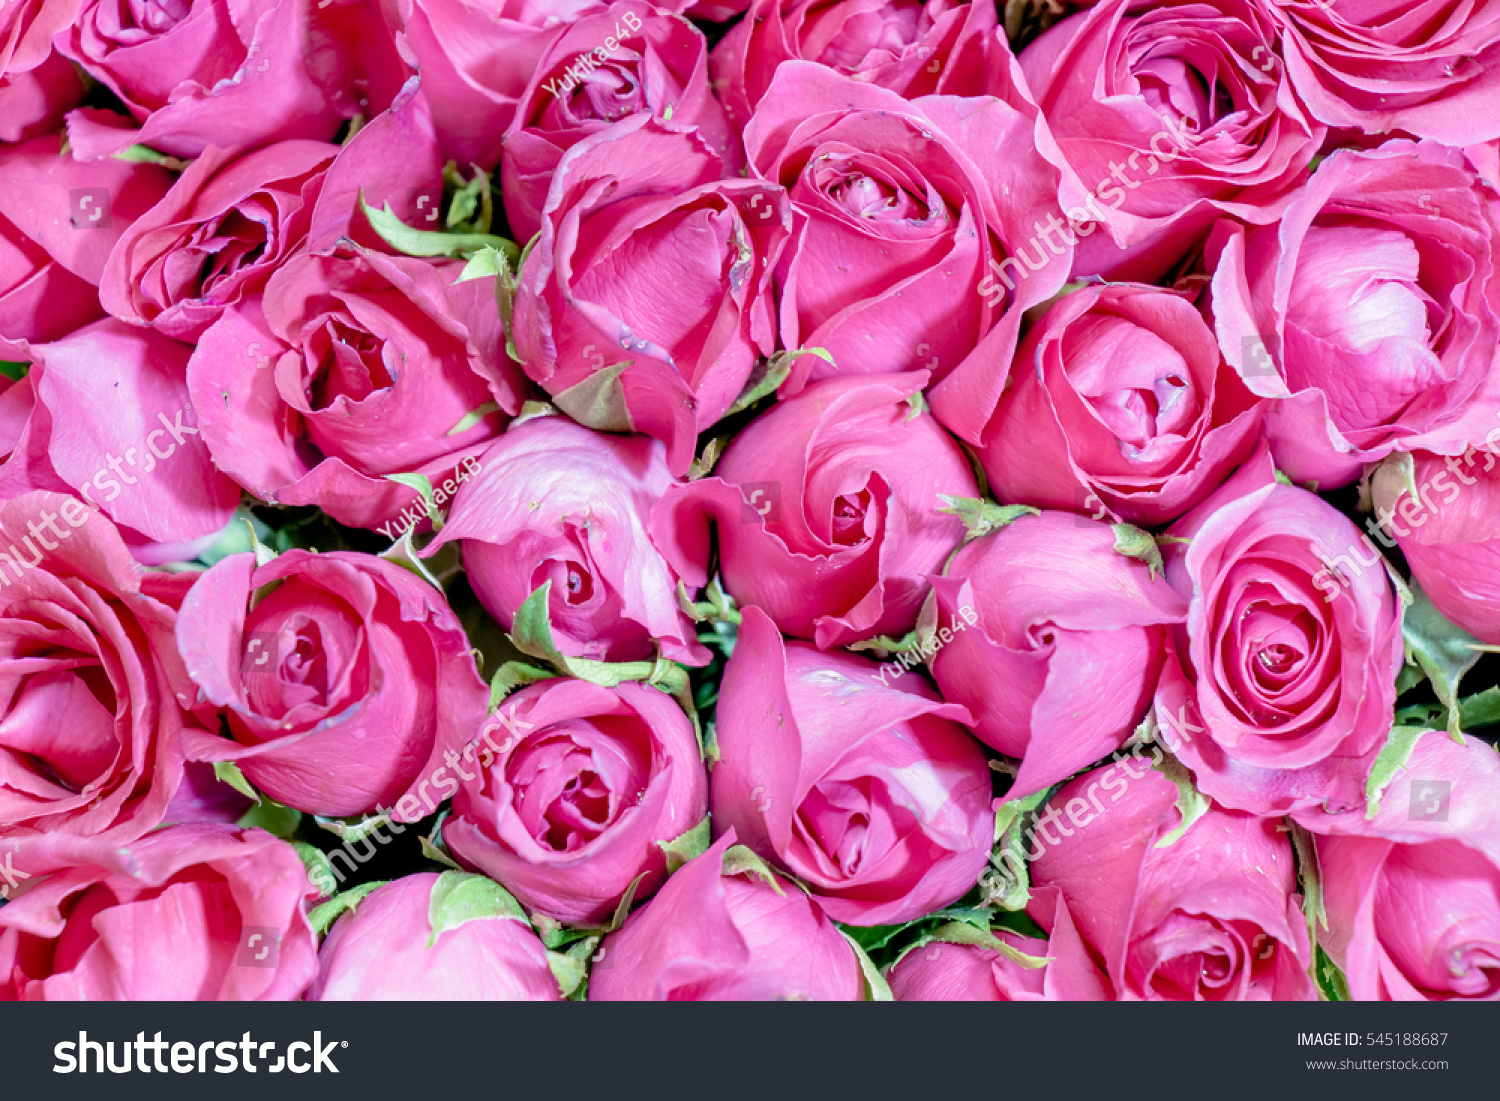 Pink of roses bouquet background set of beautiful flower valentine pink of roses bouquet background set of beautiful flower valentine concept ez canvas izmirmasajfo